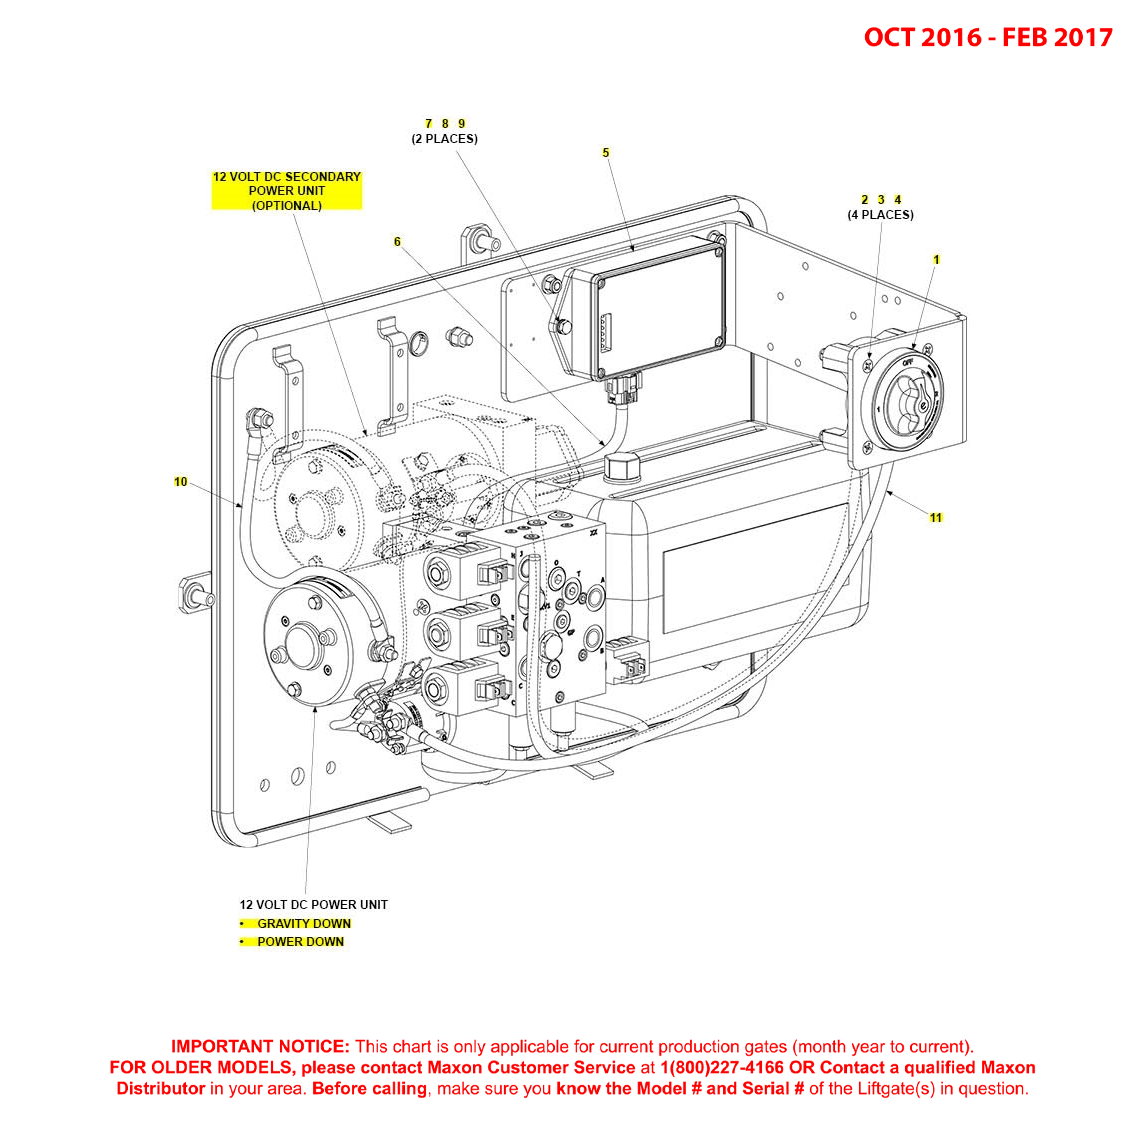 BMR (Oct 2016 - Feb 2017) MTE Hydraulics Pump Assembly Electrical Components Diagram